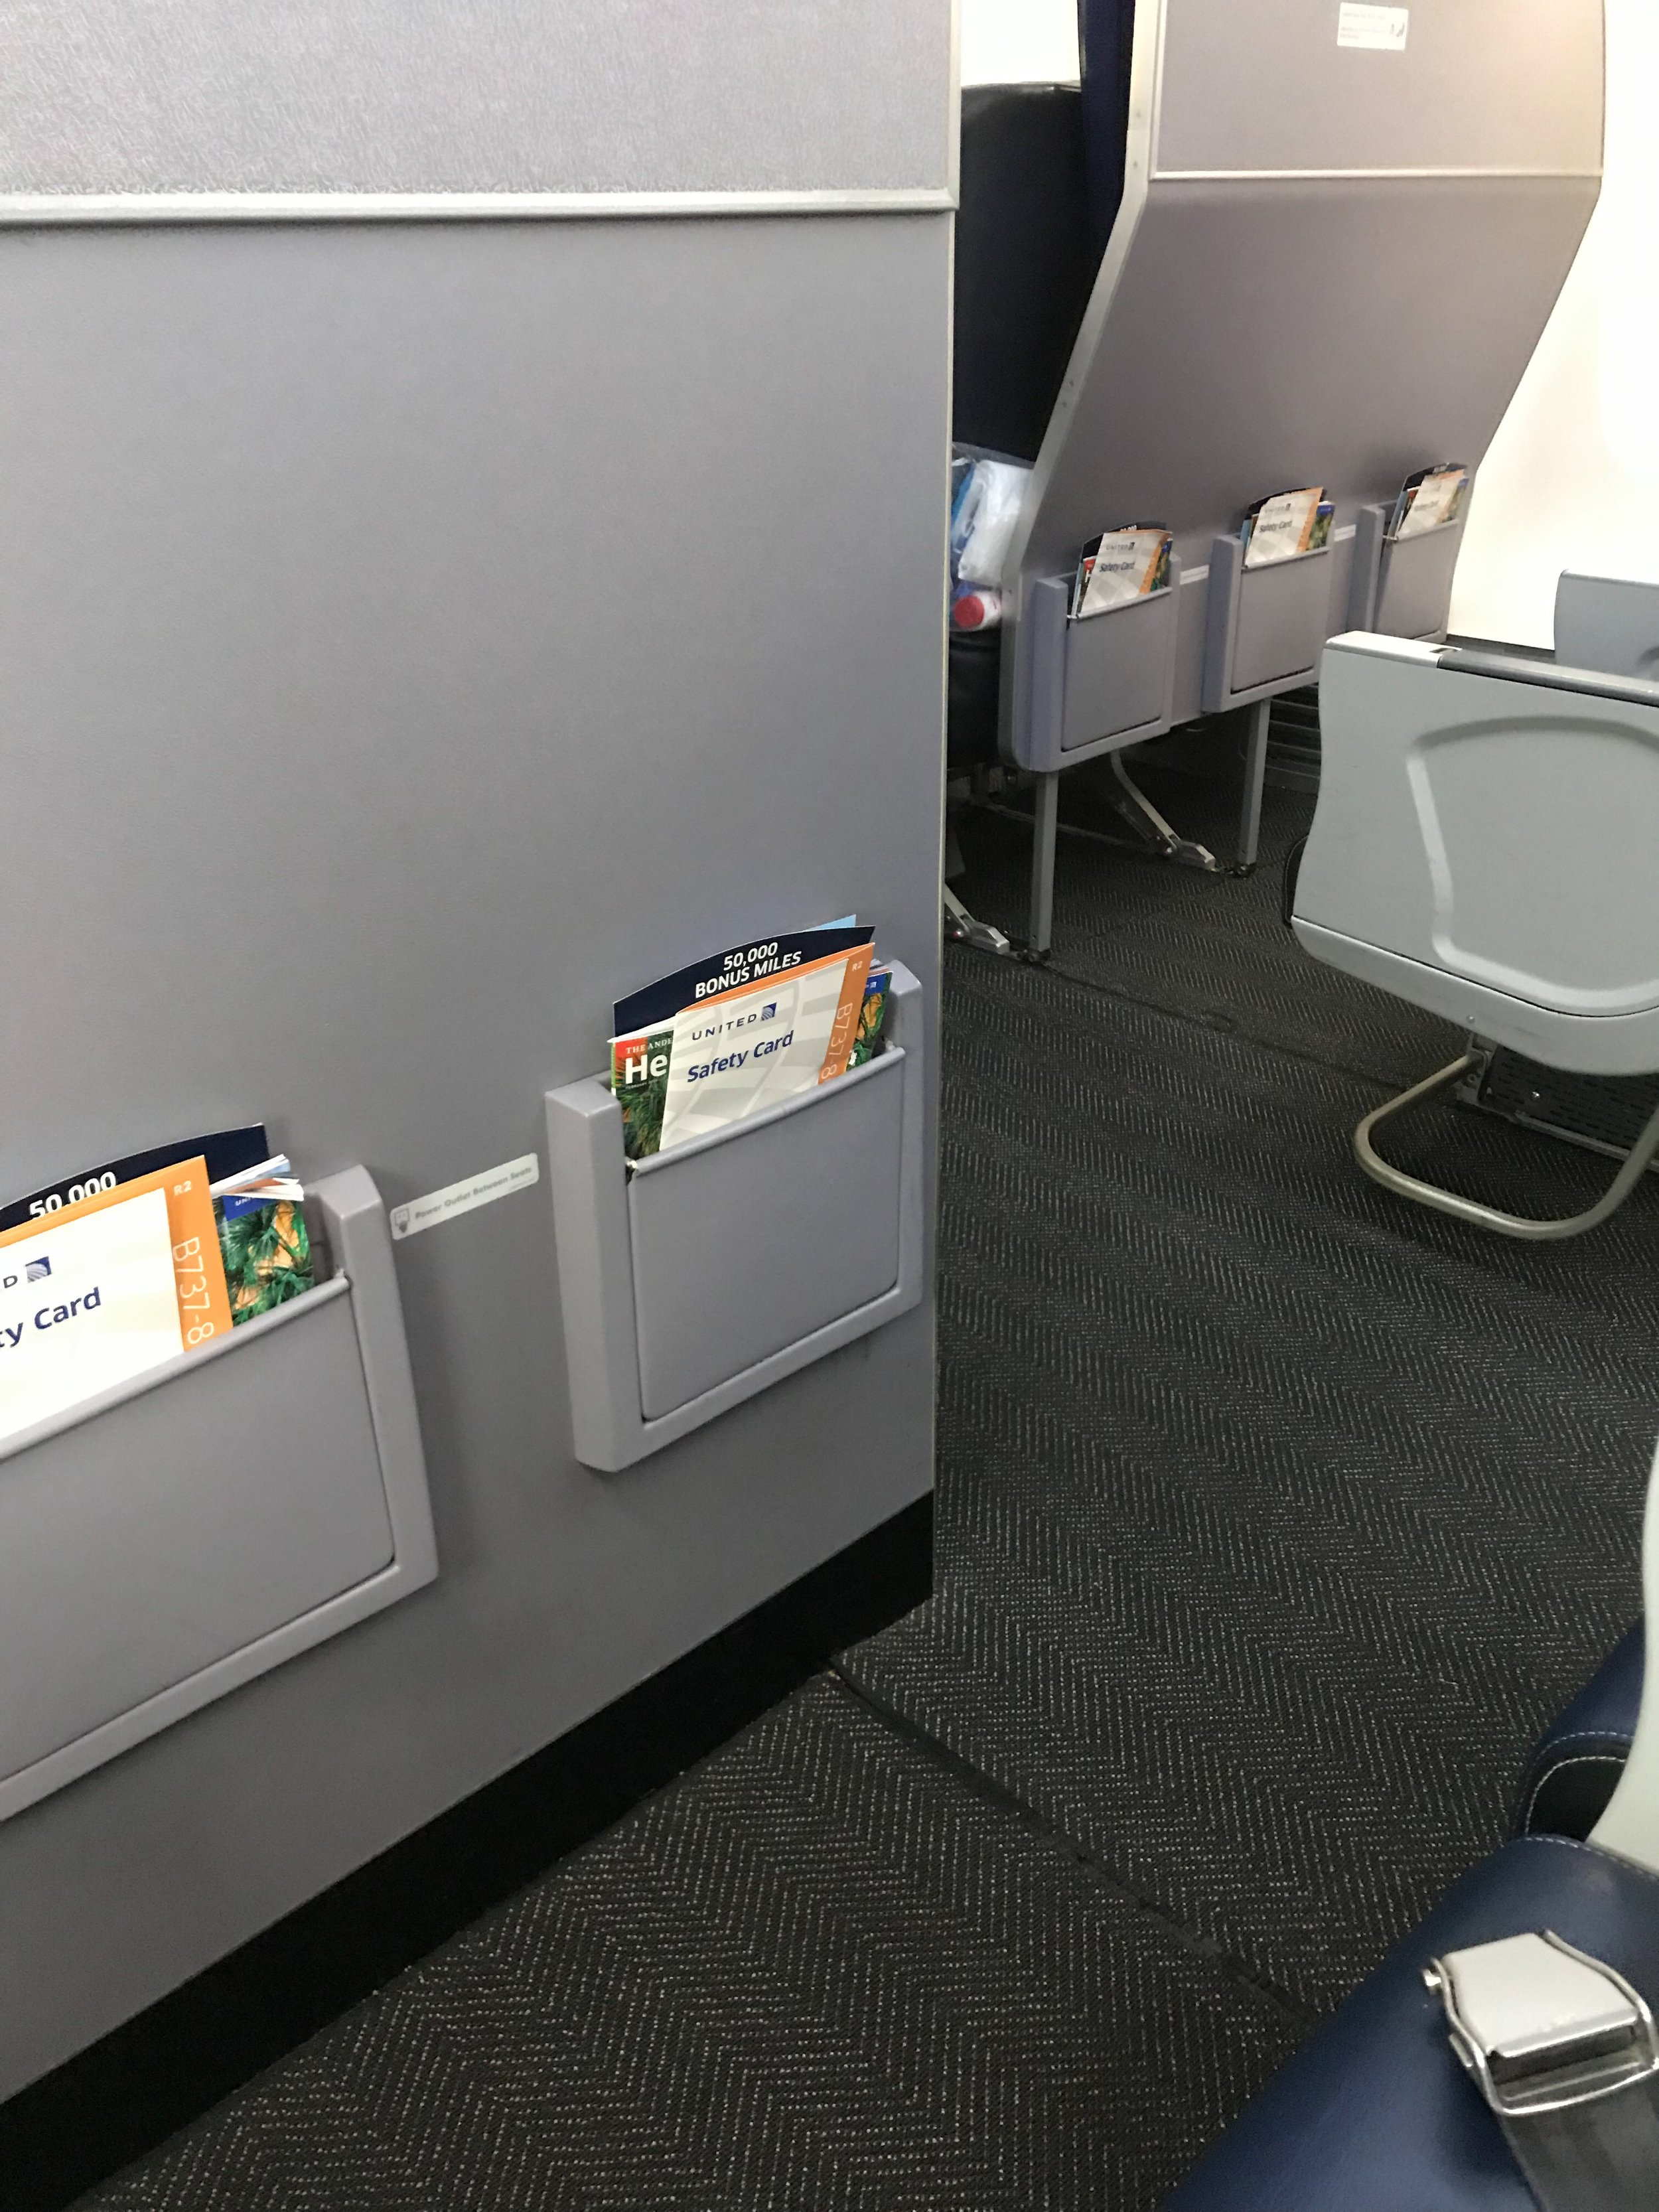 Seats in Row 8 do not have under-seat stowage.